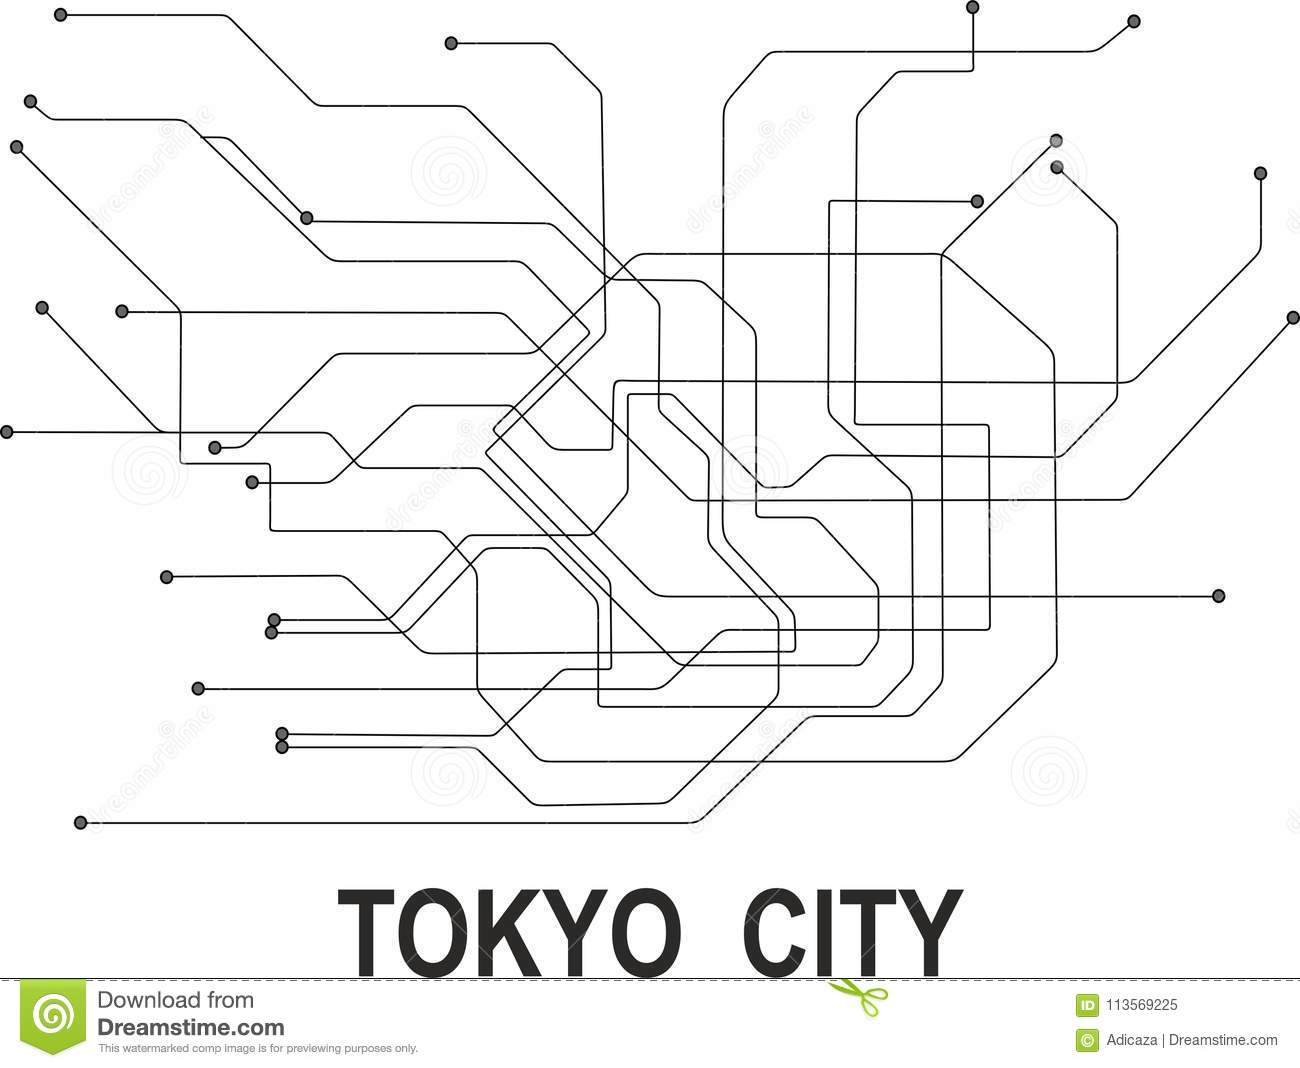 Tokyo Subway Map Art.Tokyo City Map Stock Vector Illustration Of Illustration 113569225